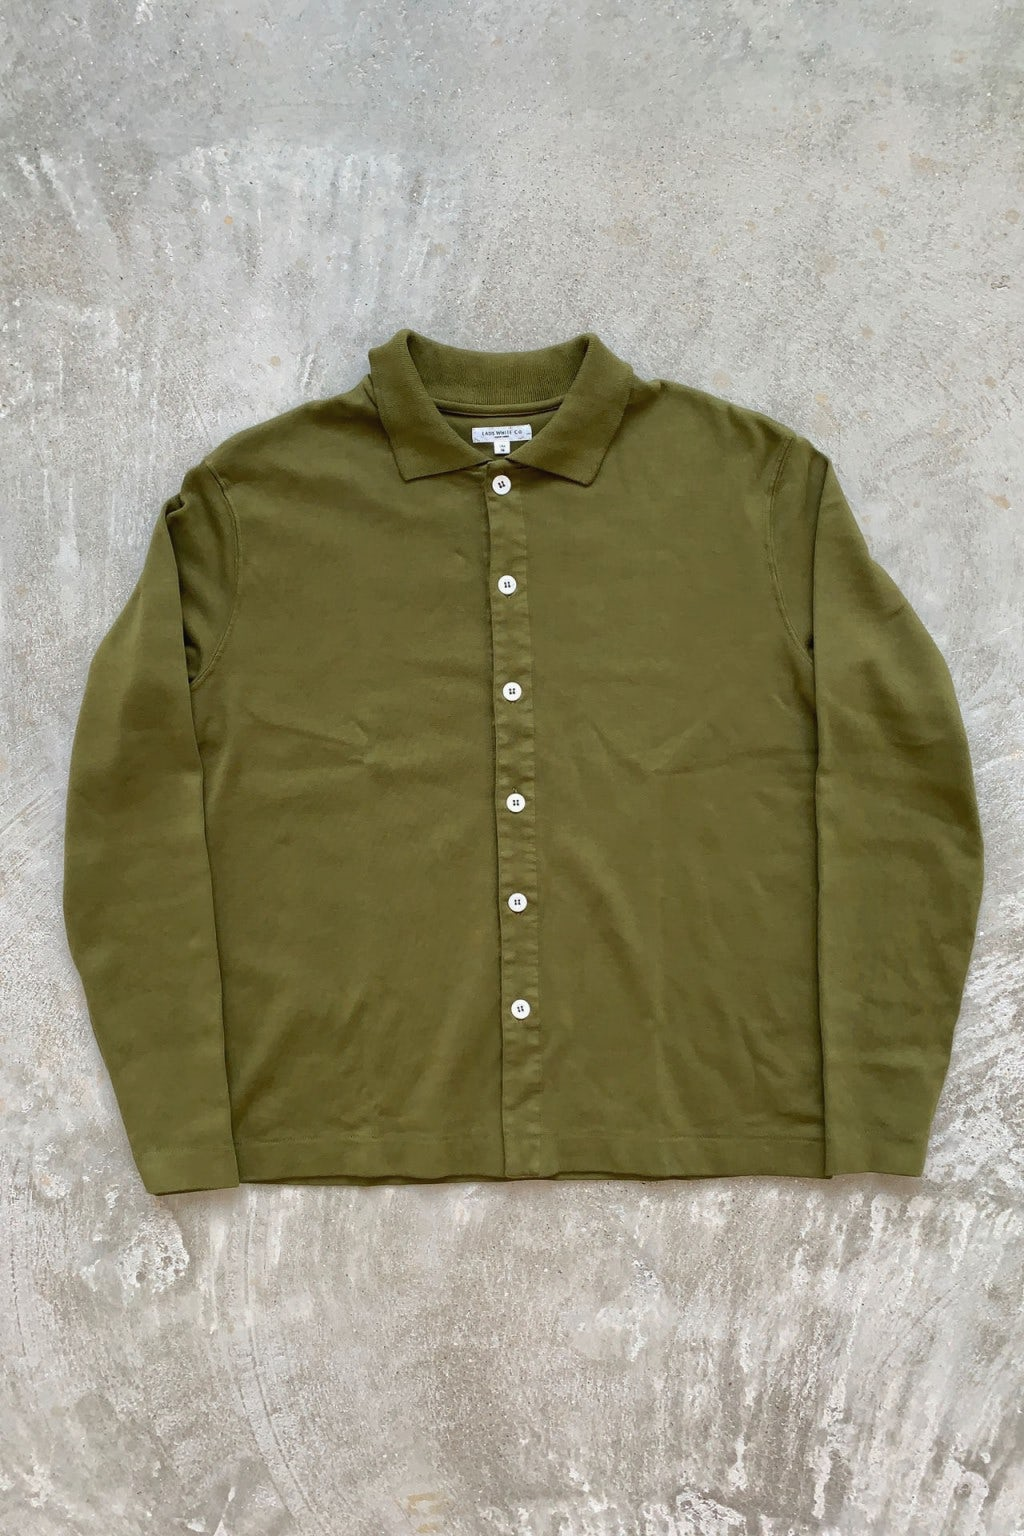 Lady White Co. Placket Polo Fern Green L/S